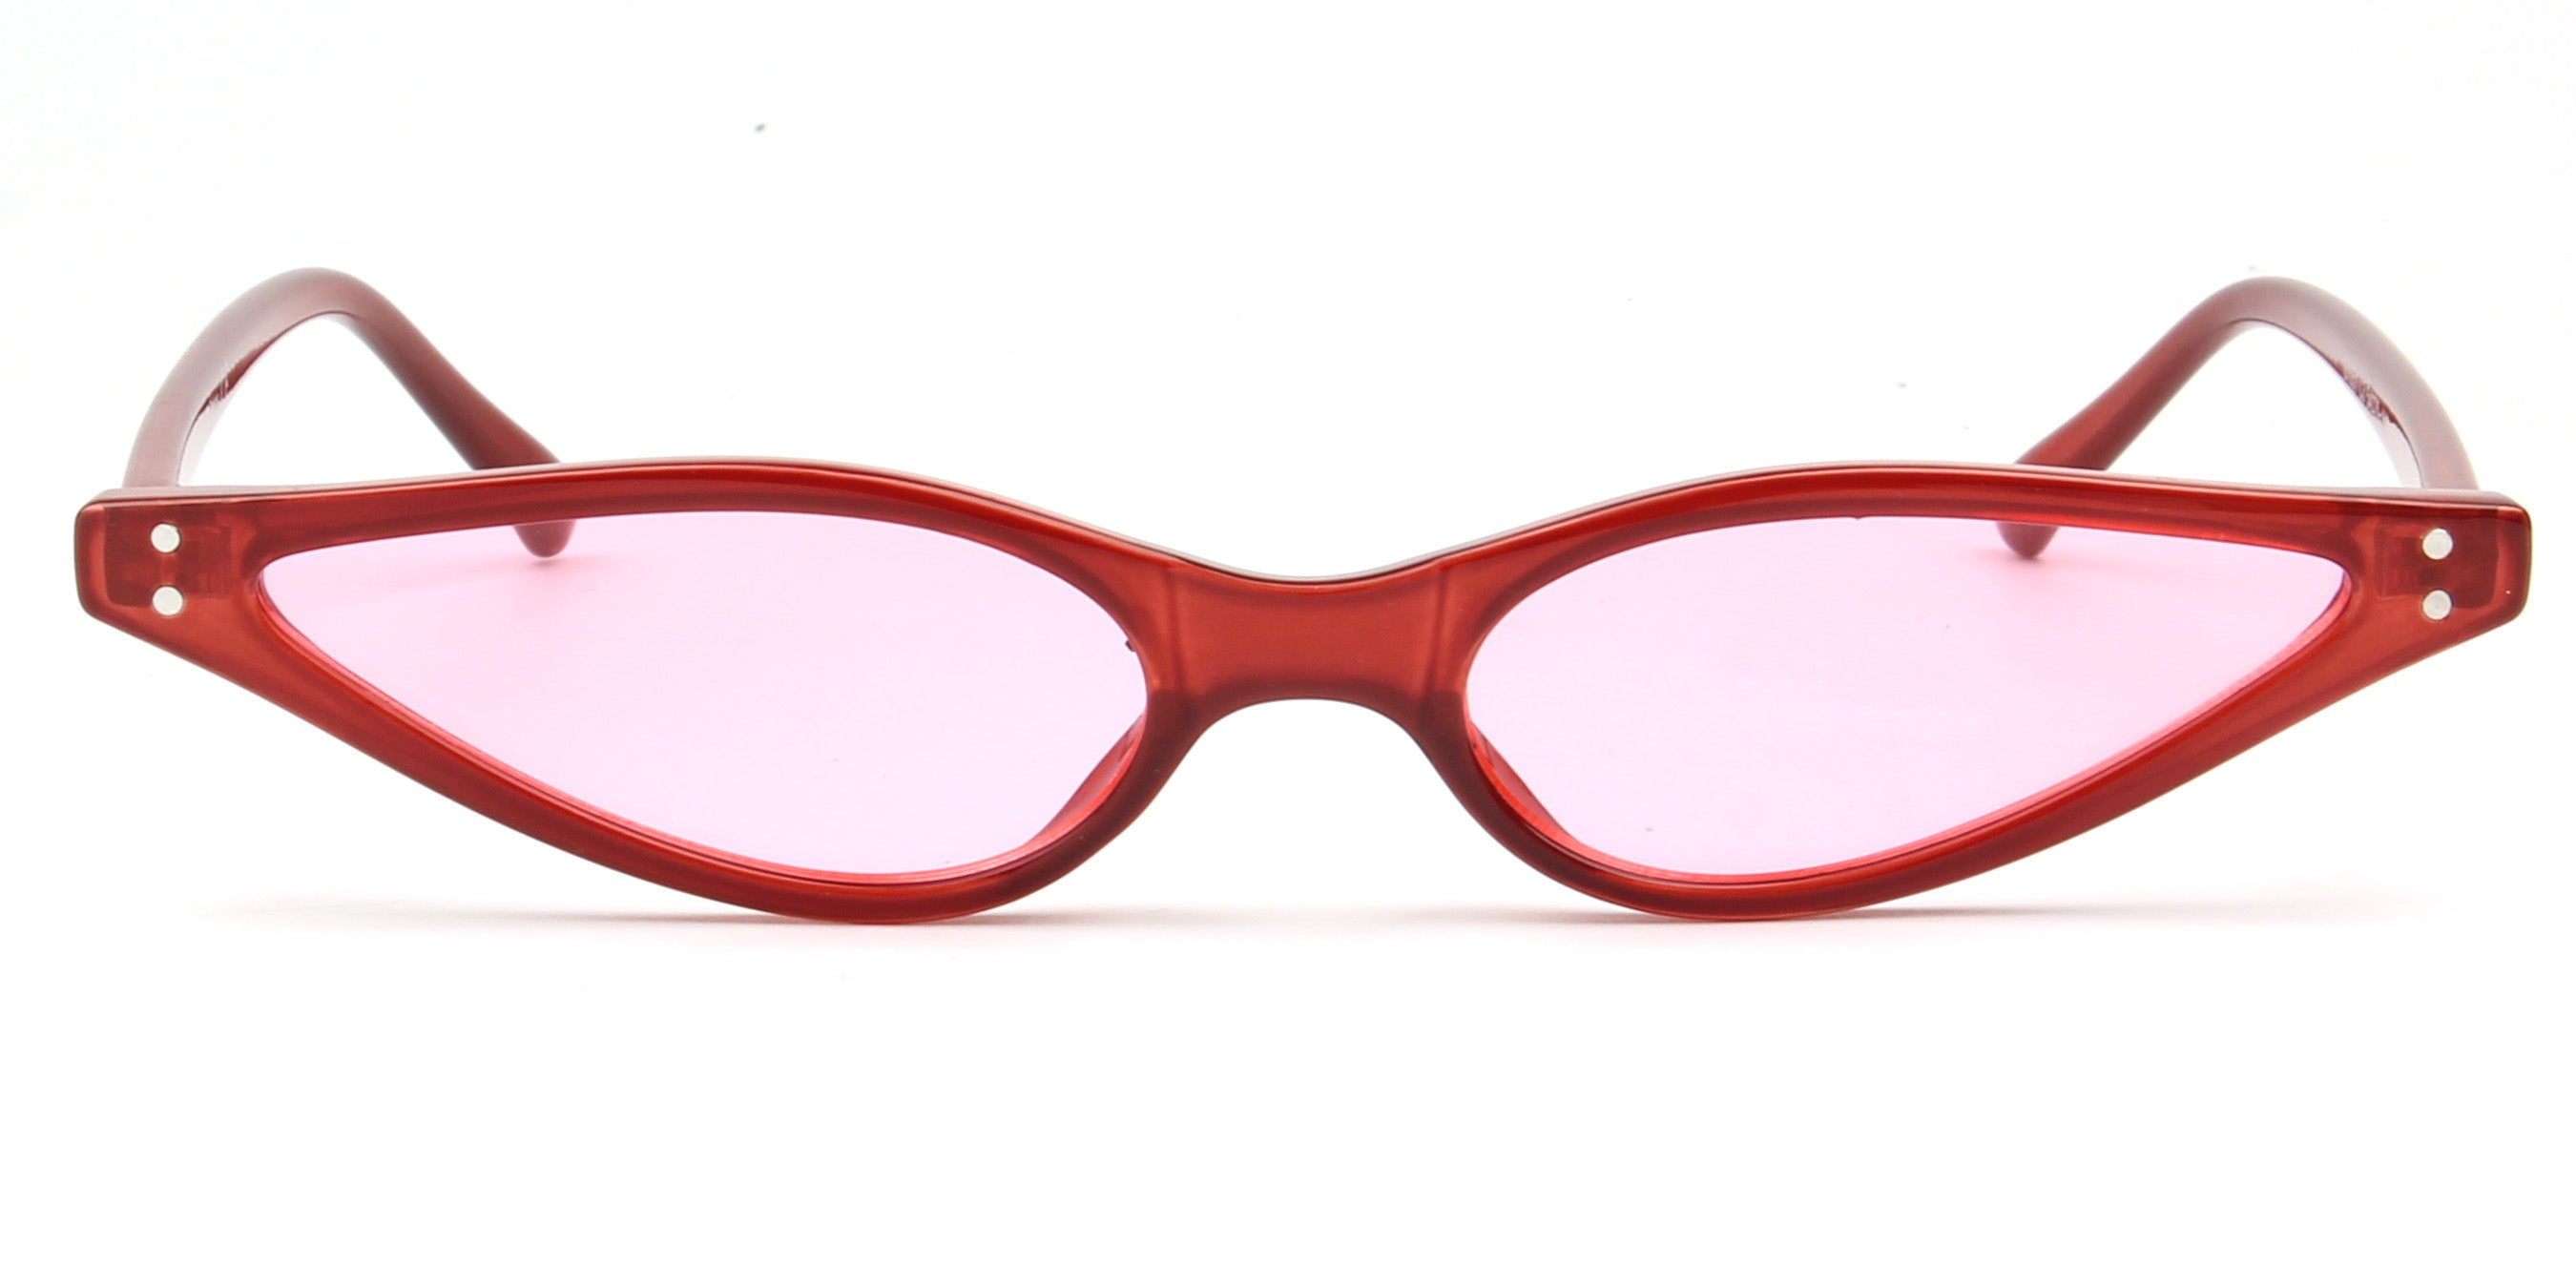 Akcessoryz-women small round oval sunglasses with pink lens and red frame